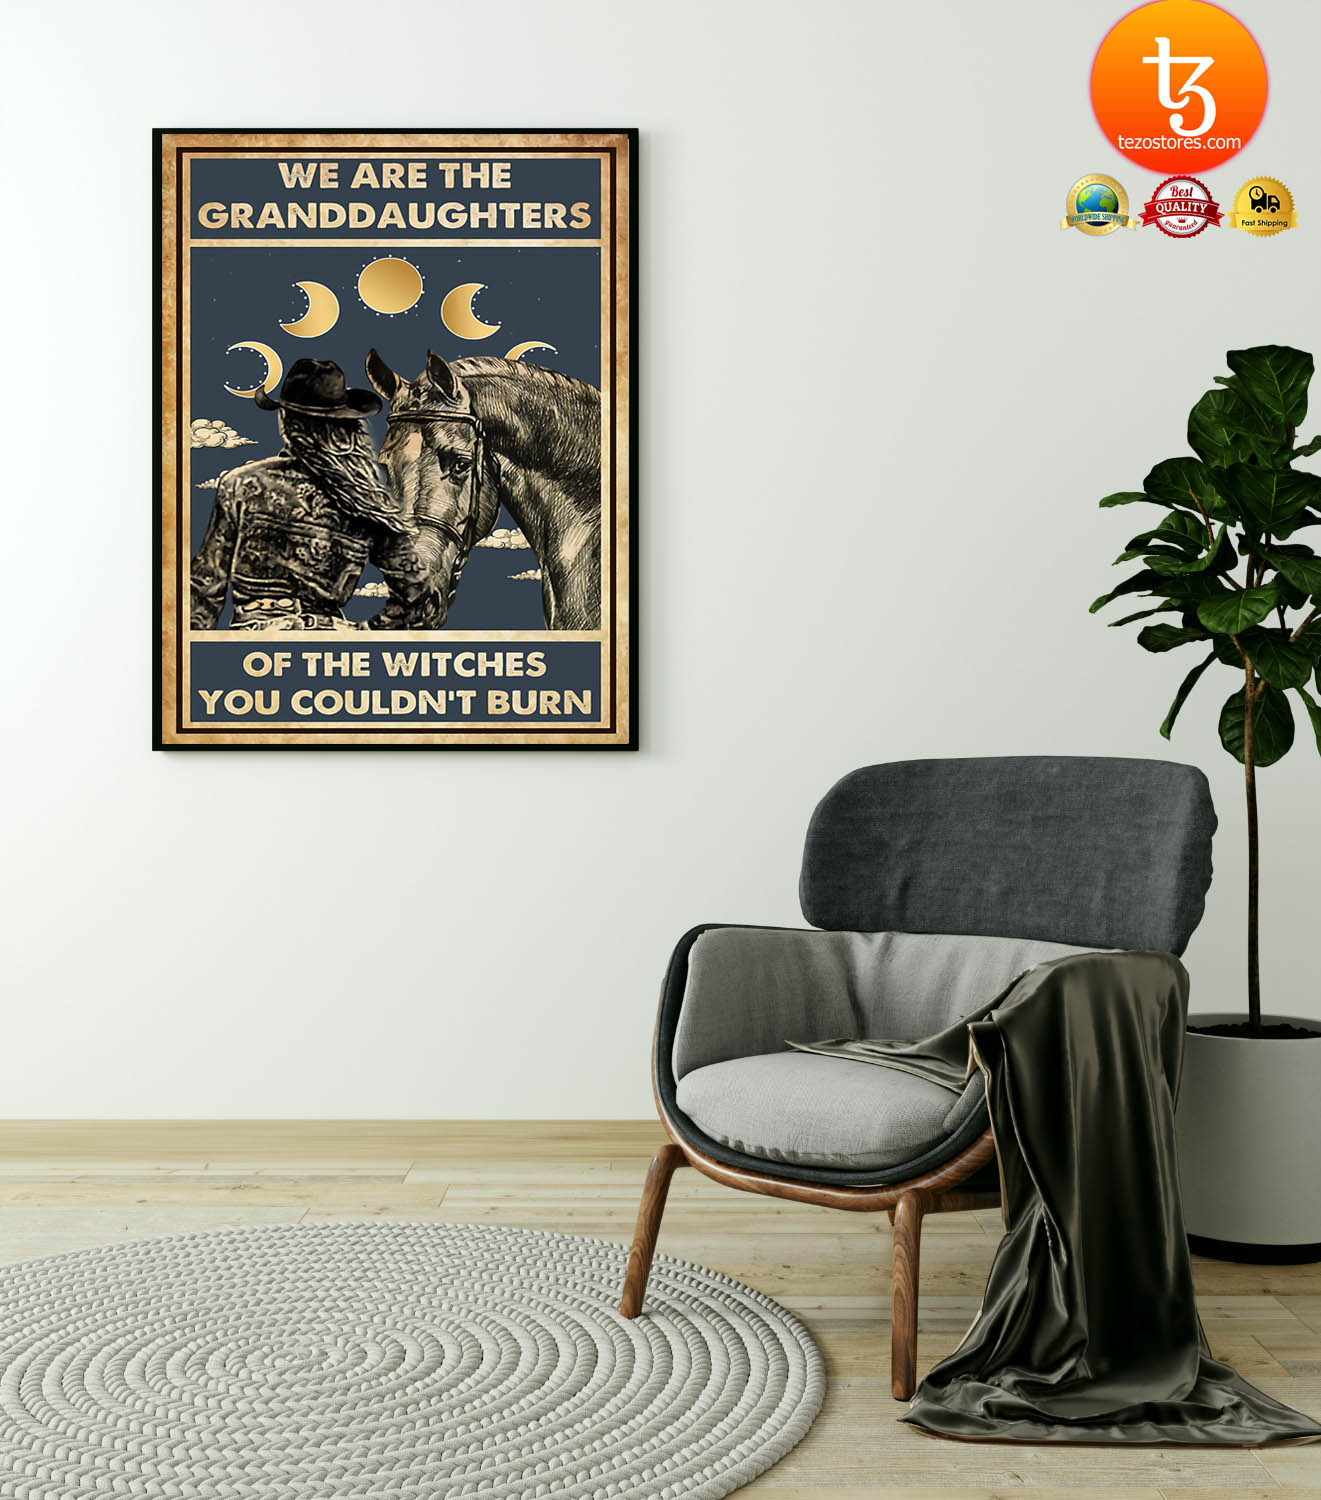 We are the granddaughters of the withches you coundn't burn poster 23